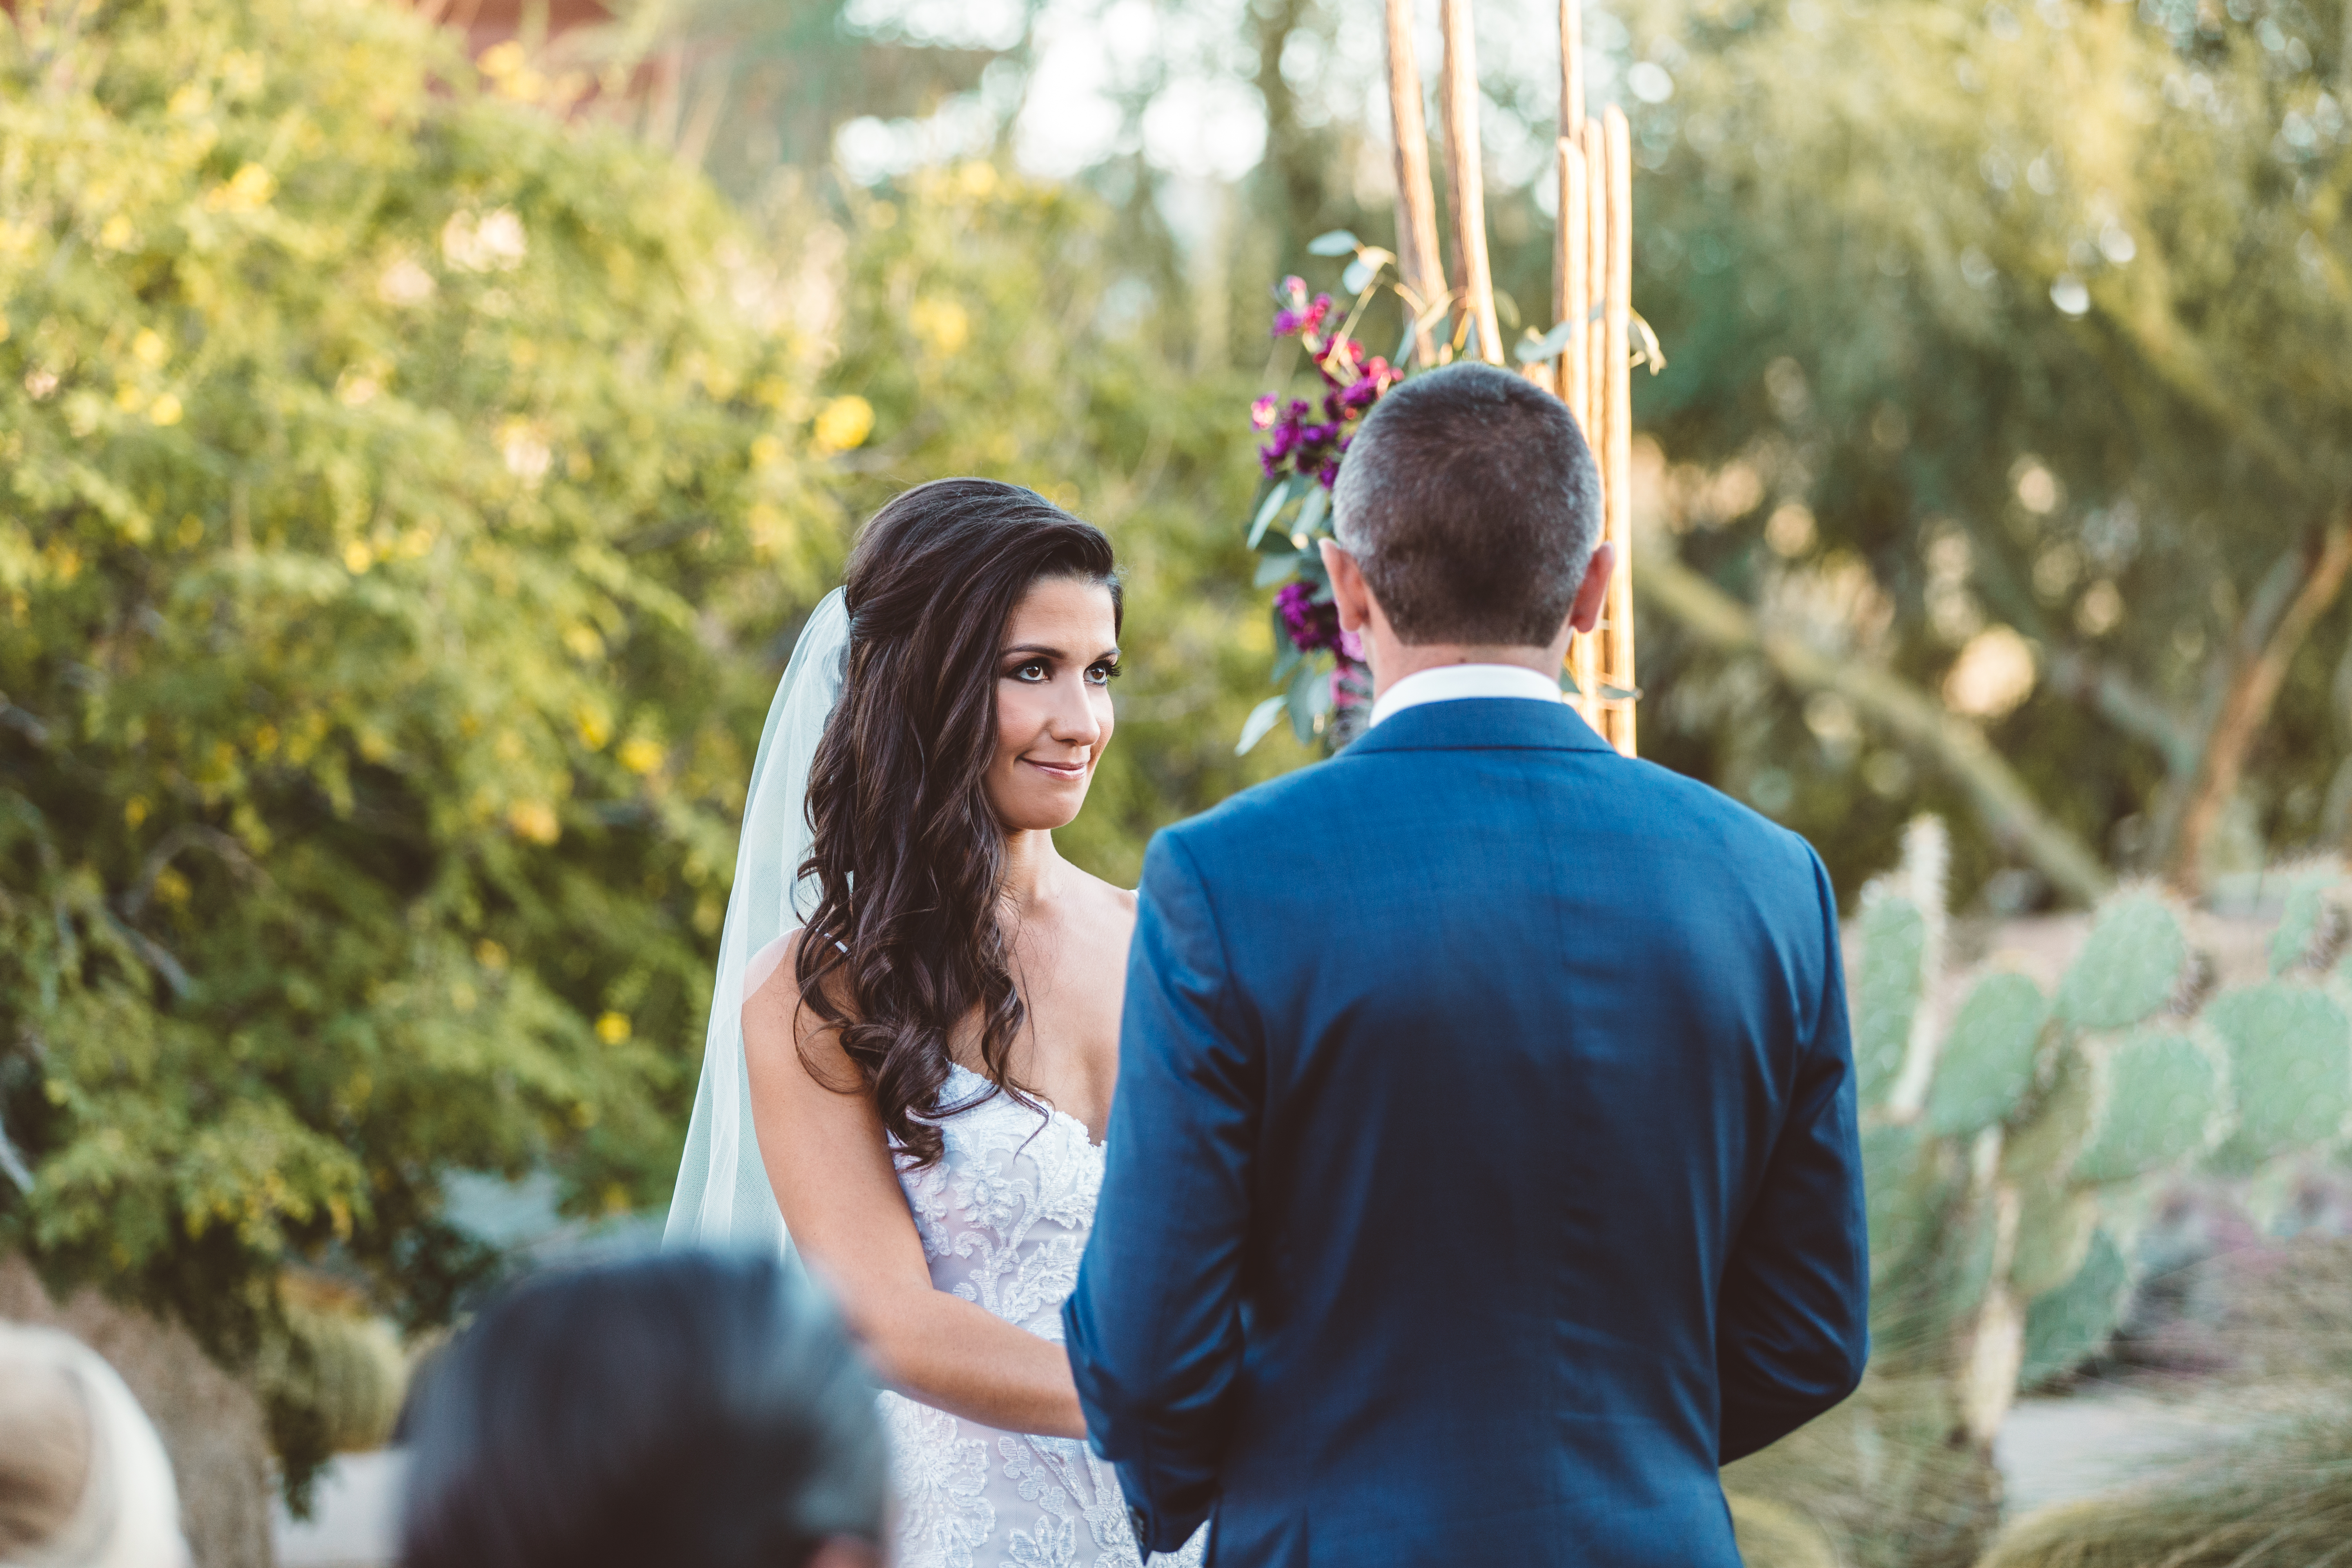 Categories: Weddings-Real Wedding: Christina + Tom - Photography by Frank & Peggy